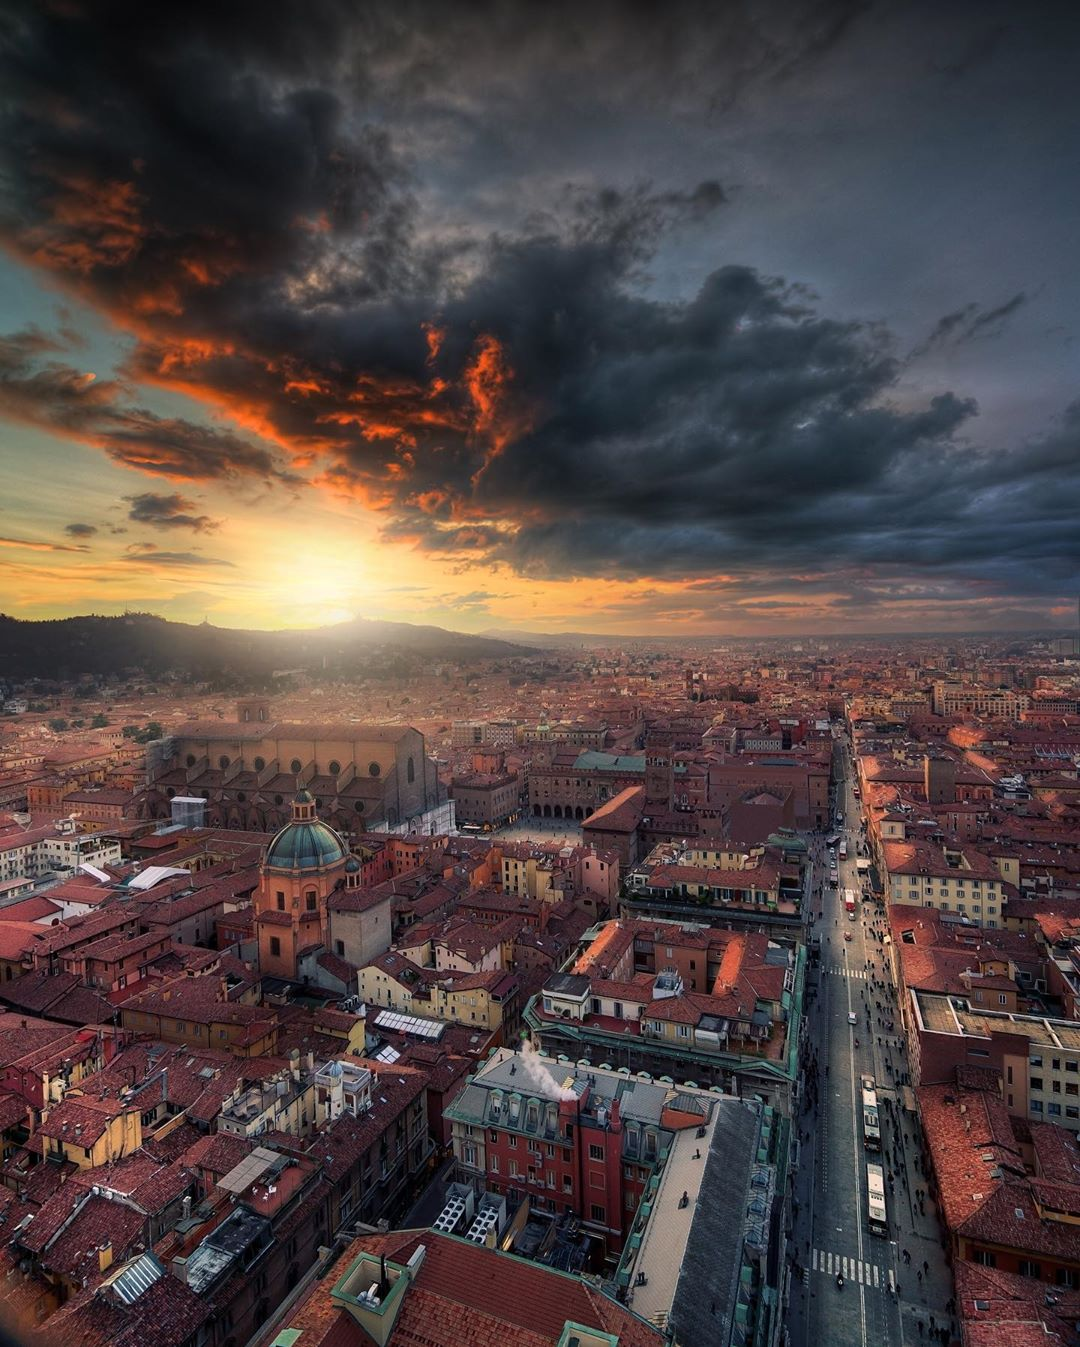 Bologna, view from the Asinelli Tower Ph. @dorpell via Instagram